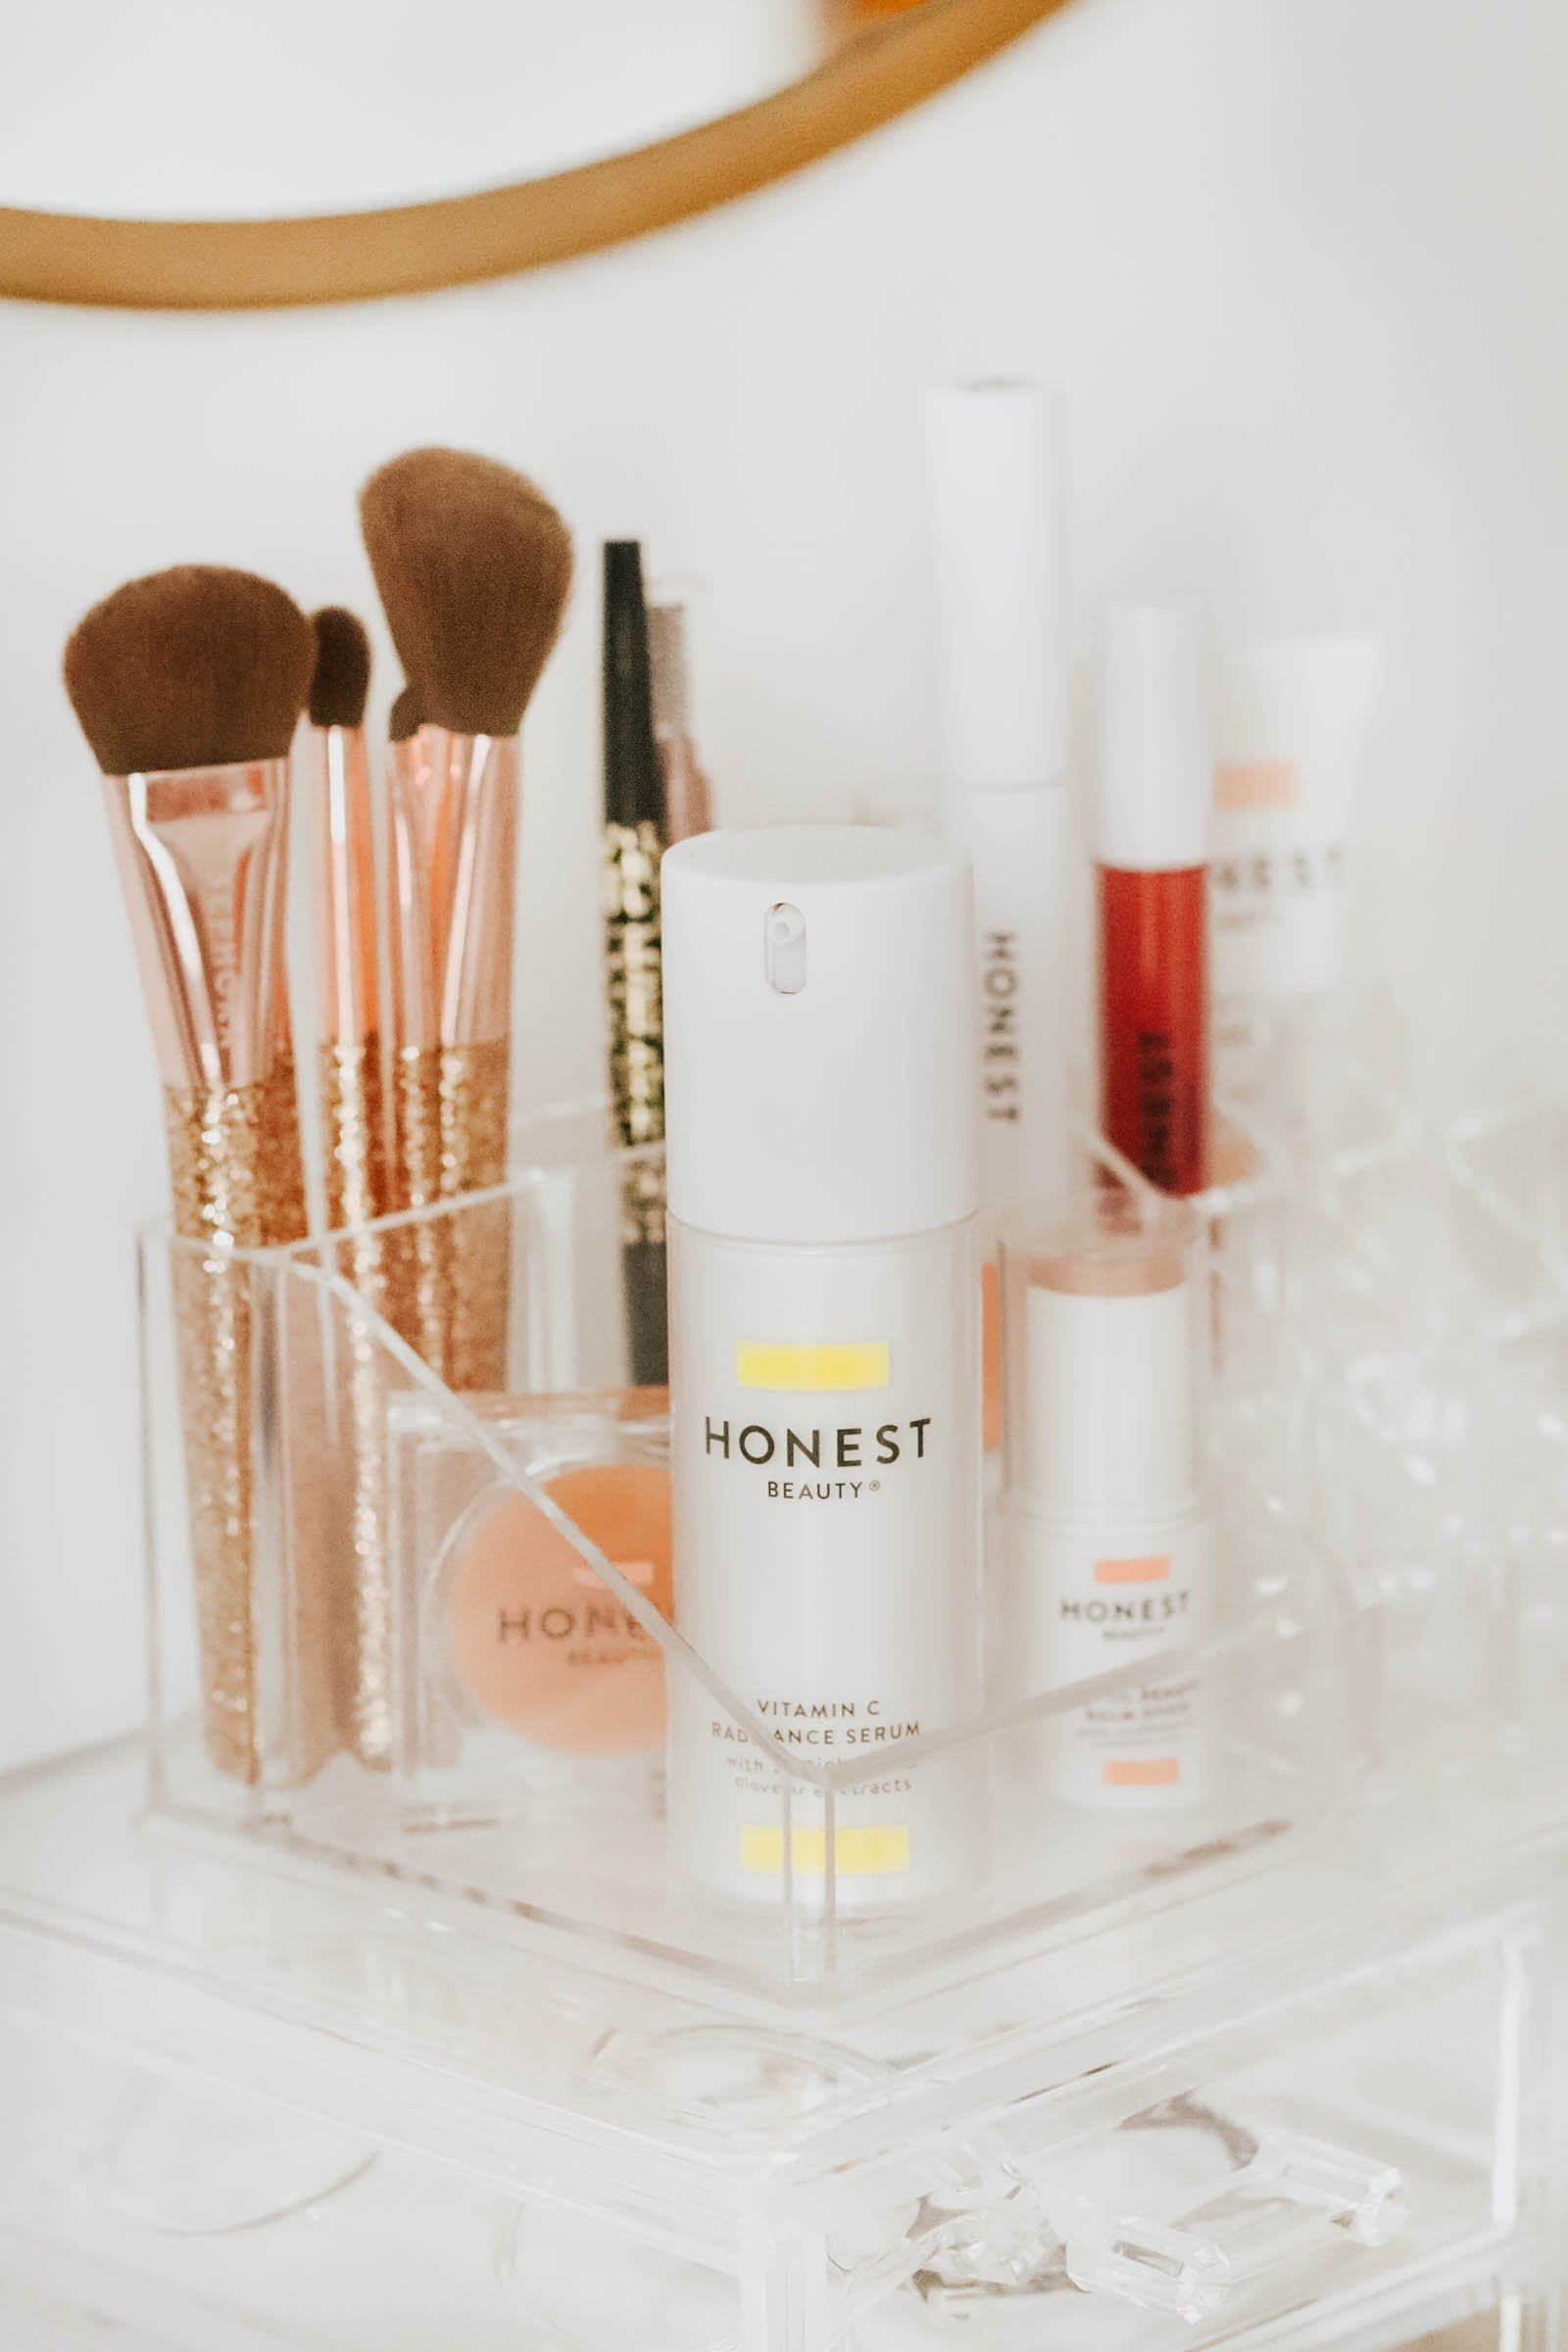 Clear Makeup holder with brushes and Honest Beauty makeup products.